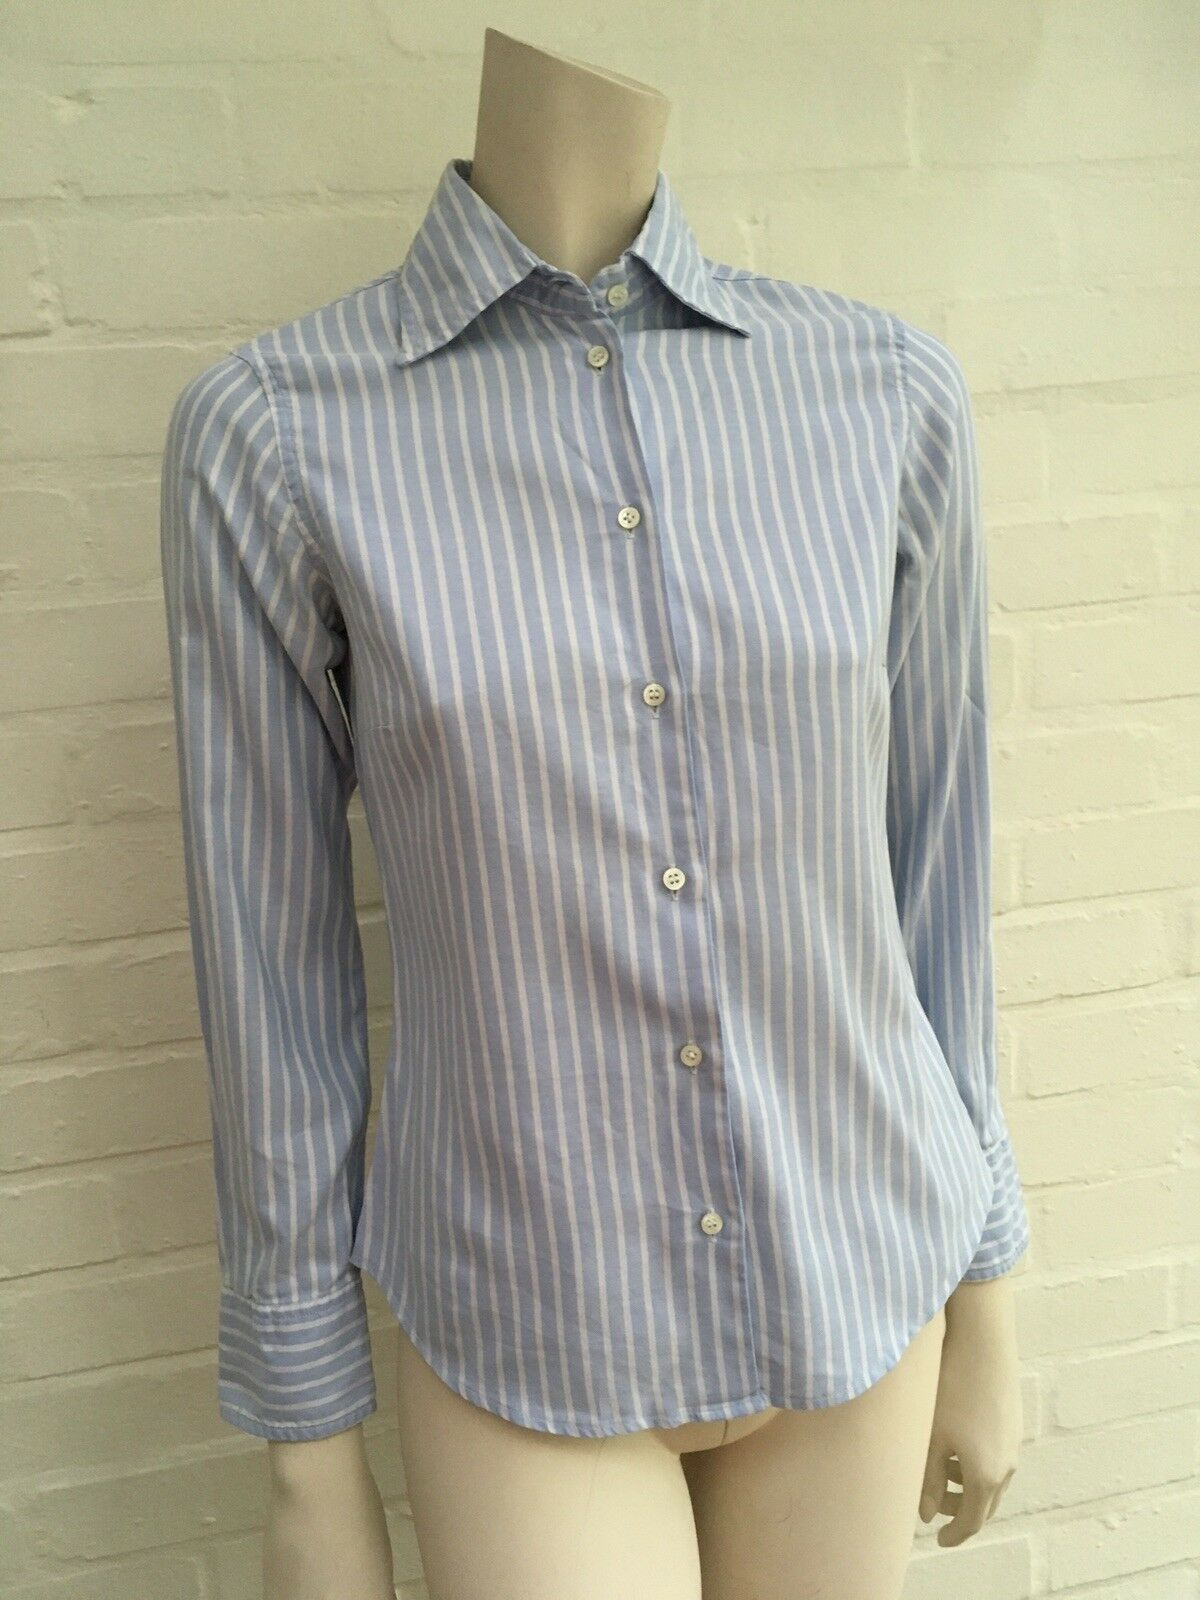 Brian & Barry MILANO BESPOKE OFFICE STRIPED BUTTON-UP SHIRT COTTON I 40 S